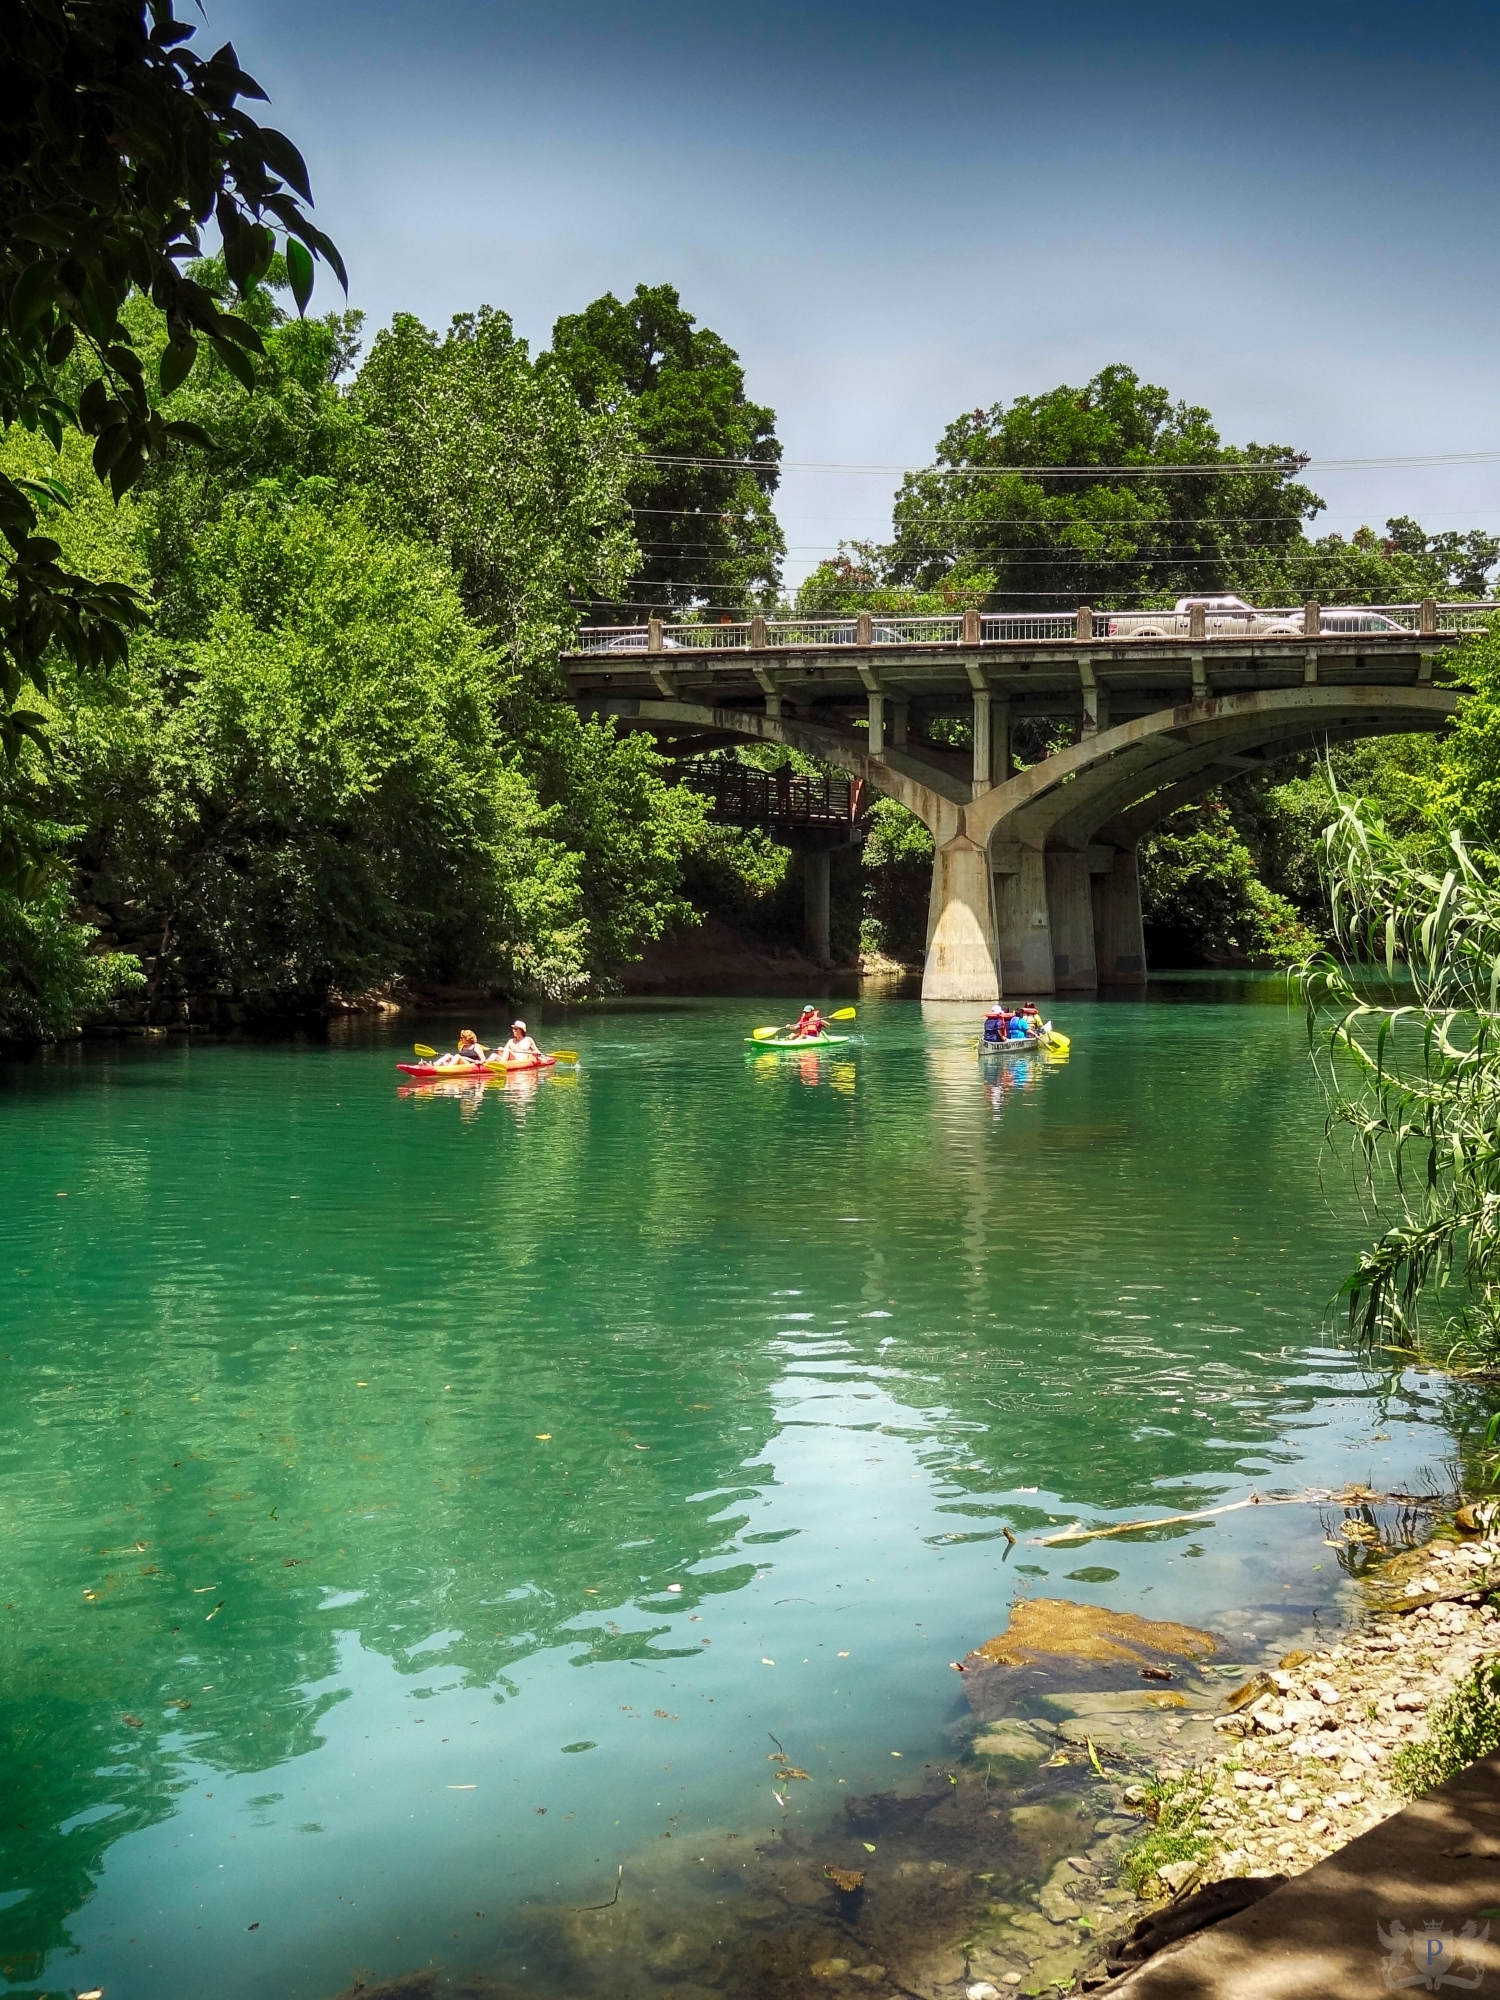 Kayaks on Barton Creek